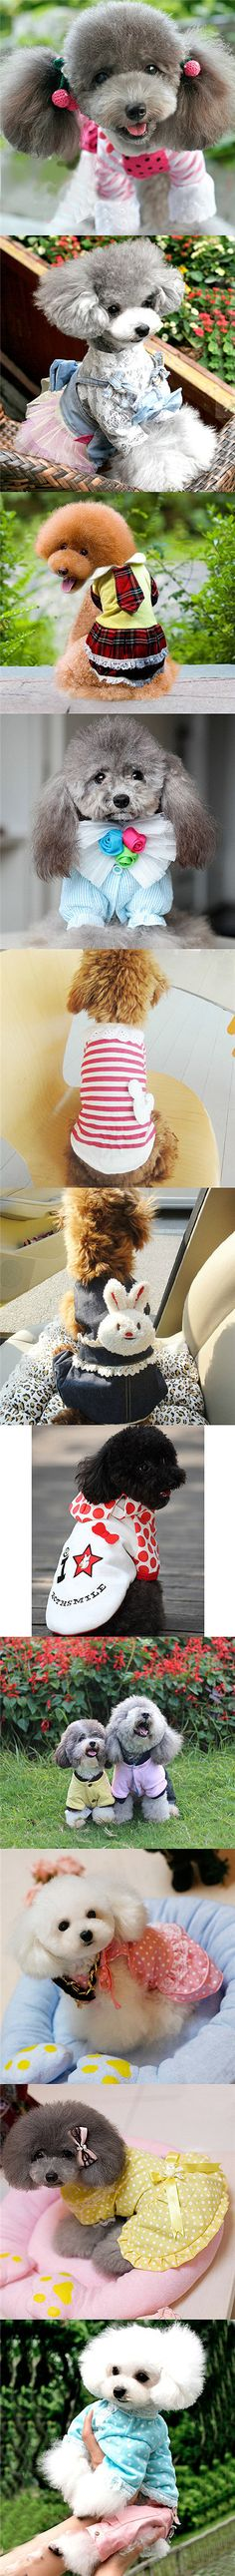 Dog clothes and accessories _ for the pampered pooch... TOO adorable for words! Posted by Redlandspoodles.com